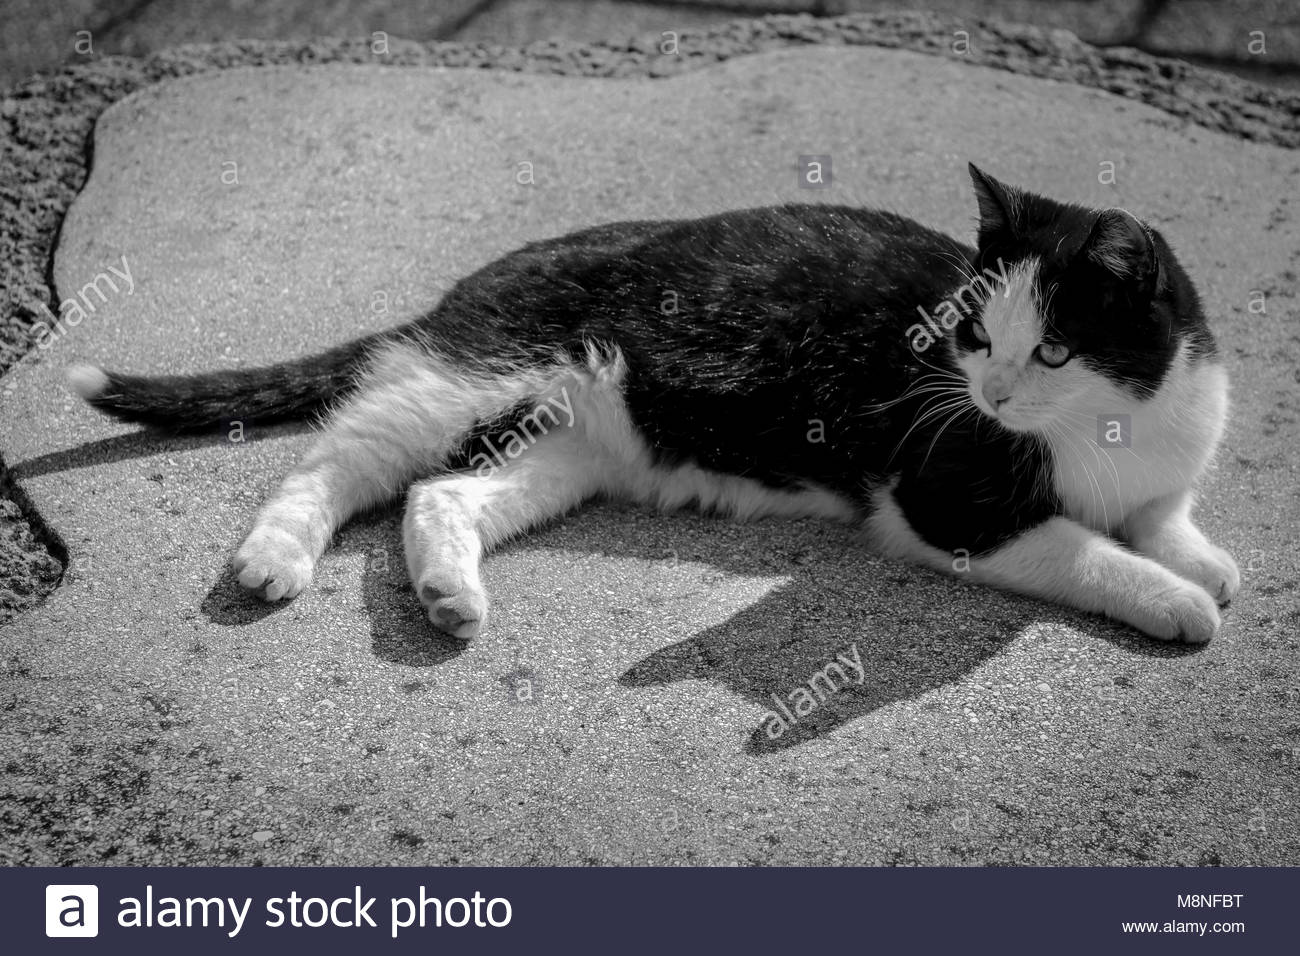 Cute black and white spotted kitten in garden monochrome image